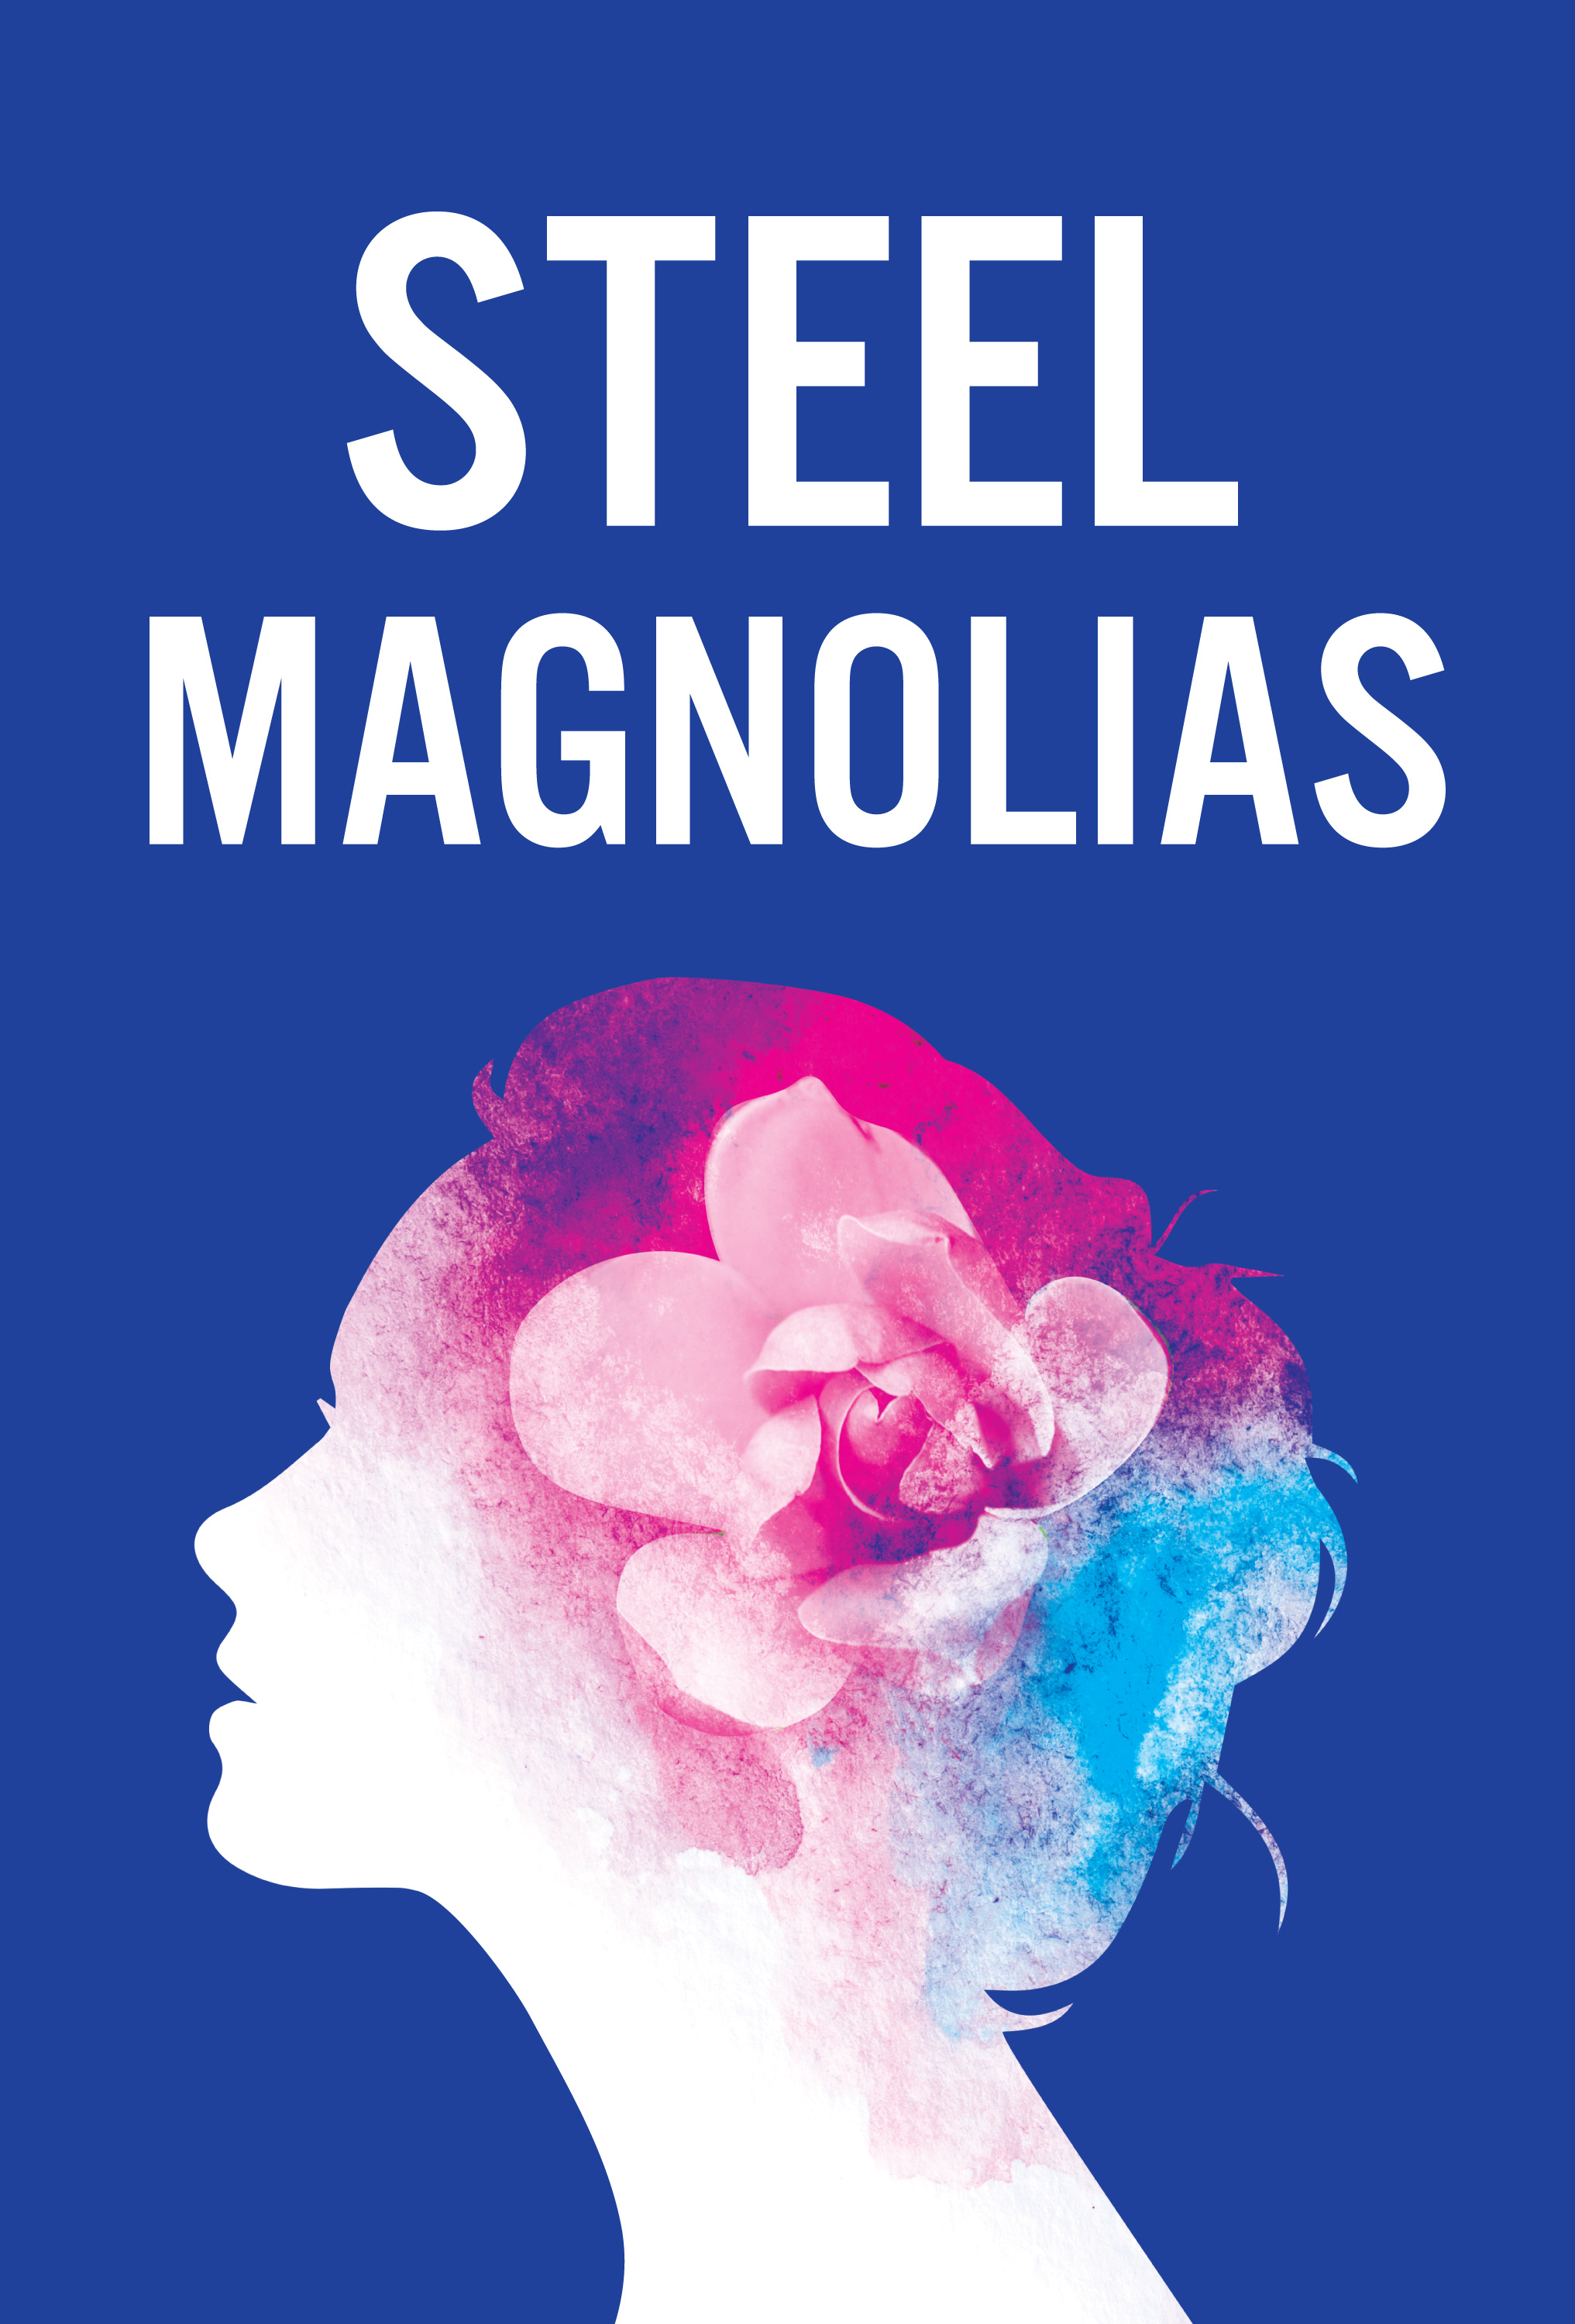 Steel Magnolias at ASF